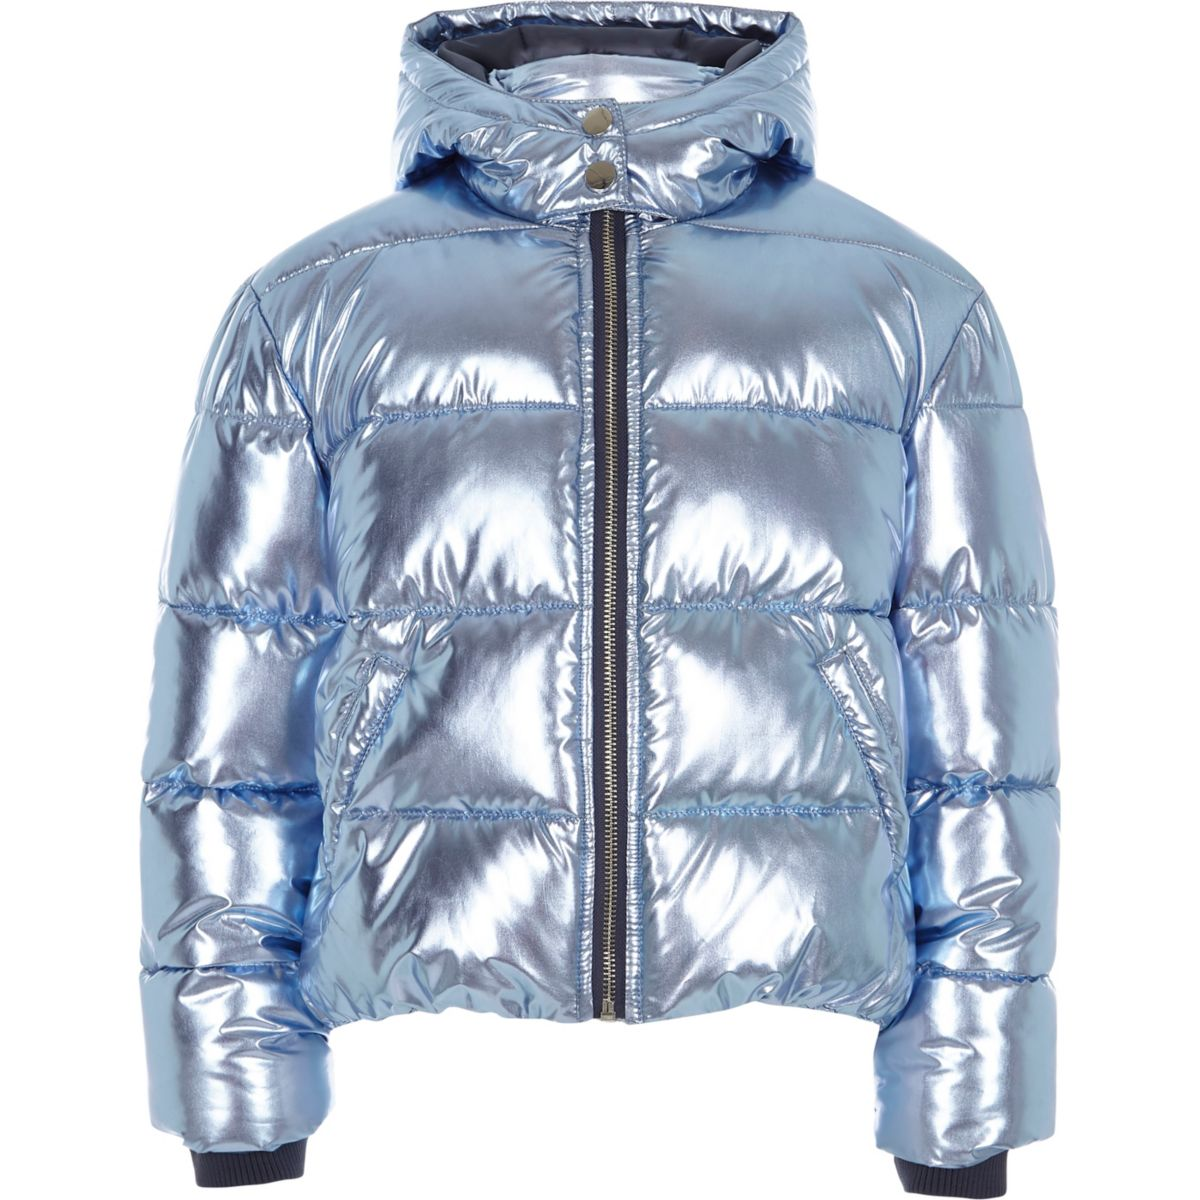 Girls blue foil hooded puffer jacket - Jackets - Coats & Jackets ...